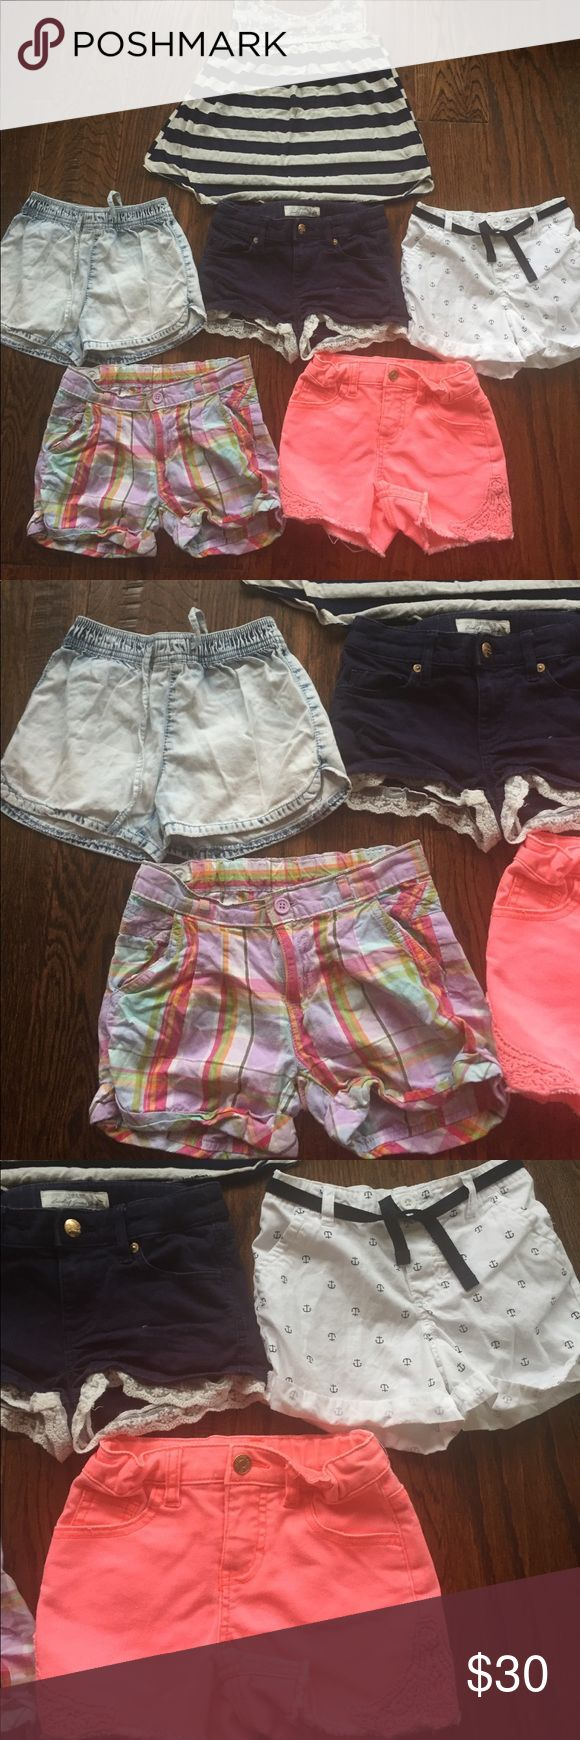 Girl Sz 6/7/8/S Shorts Bundle Clothing Lot This is a lot of Girls 5 pairs of shorts and one tank top. Carters White Blue anchor shorts Sz 6. Crazy 8 pastel Plaid shorts Sz 7. Squeeze faded Blue Denim shorts Sz 7. LOGG Navy Blue White Lace Trim shorts size 8-9 year. Cherokee bright orange Jean shorts Sz S. Most are adjustable waist of elastic waistband. Btween Tank top is a Size S. All in great condition with no flaws. Bottoms Shorts